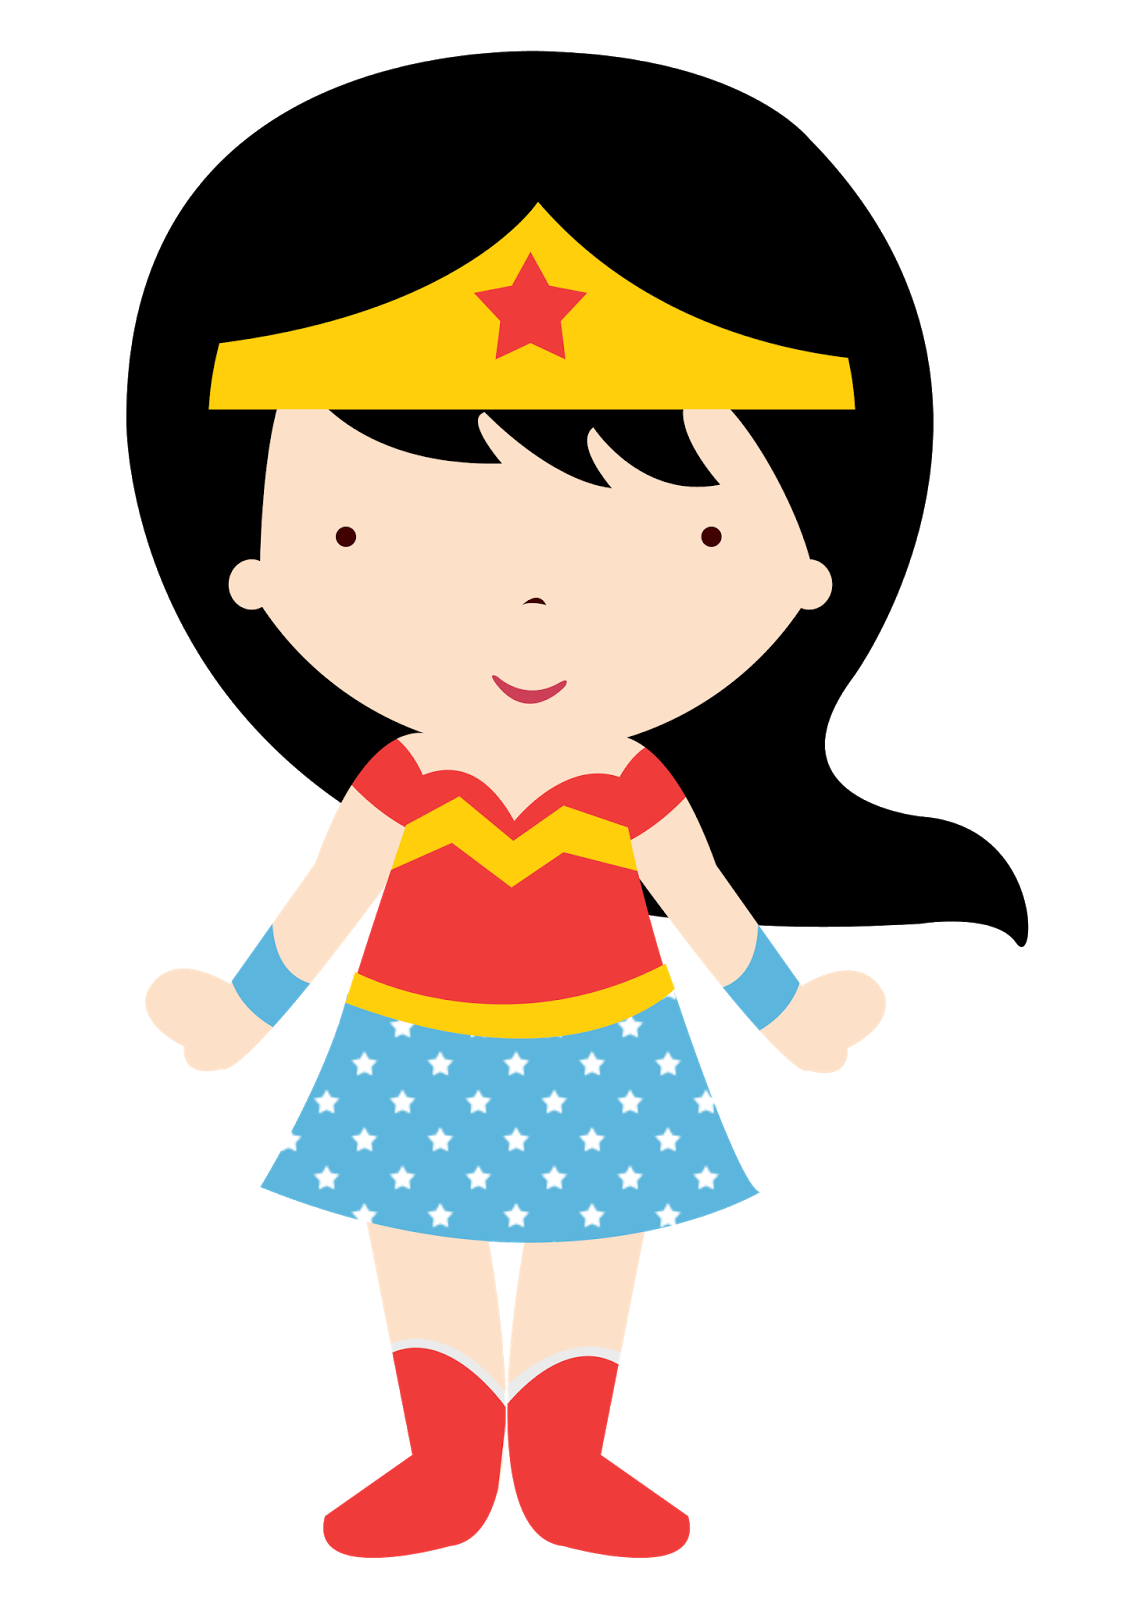 Cat woman mask clipart image transparent stock Wonder Woman Baby in Different Styles Clipart. - Oh My Fiesta! for Geeks image transparent stock